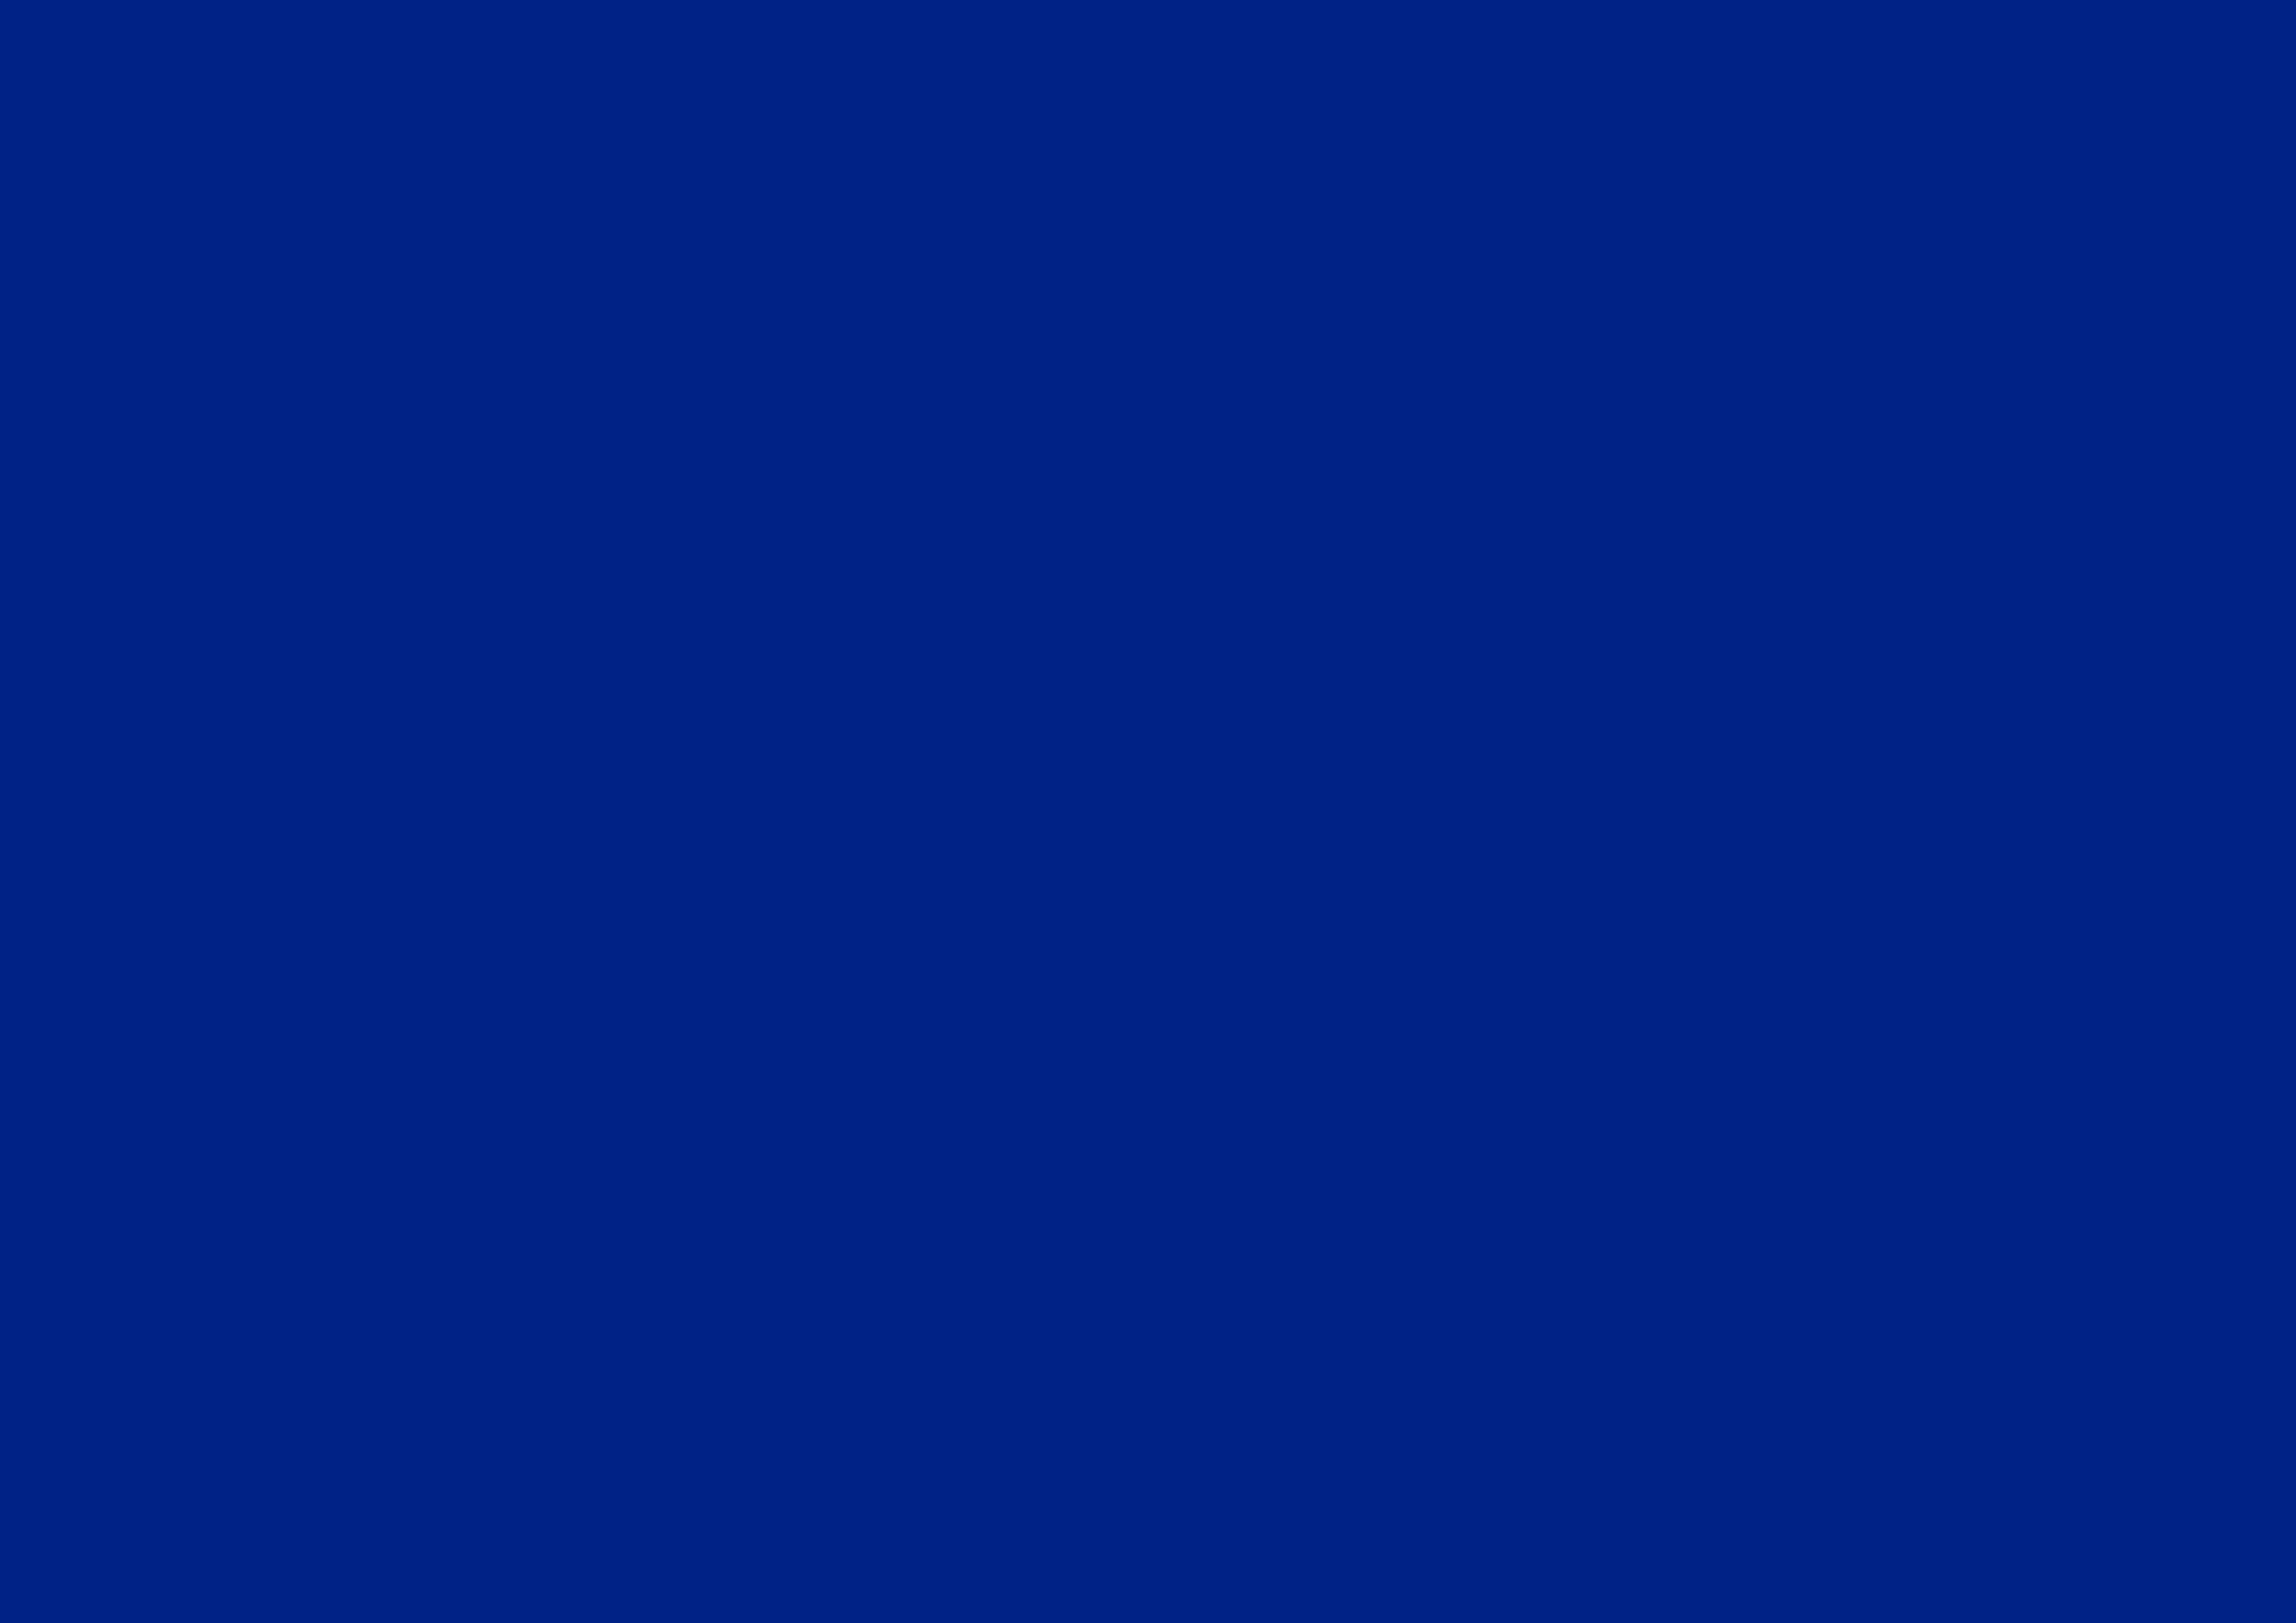 3508x2480 Resolution Blue Solid Color Background